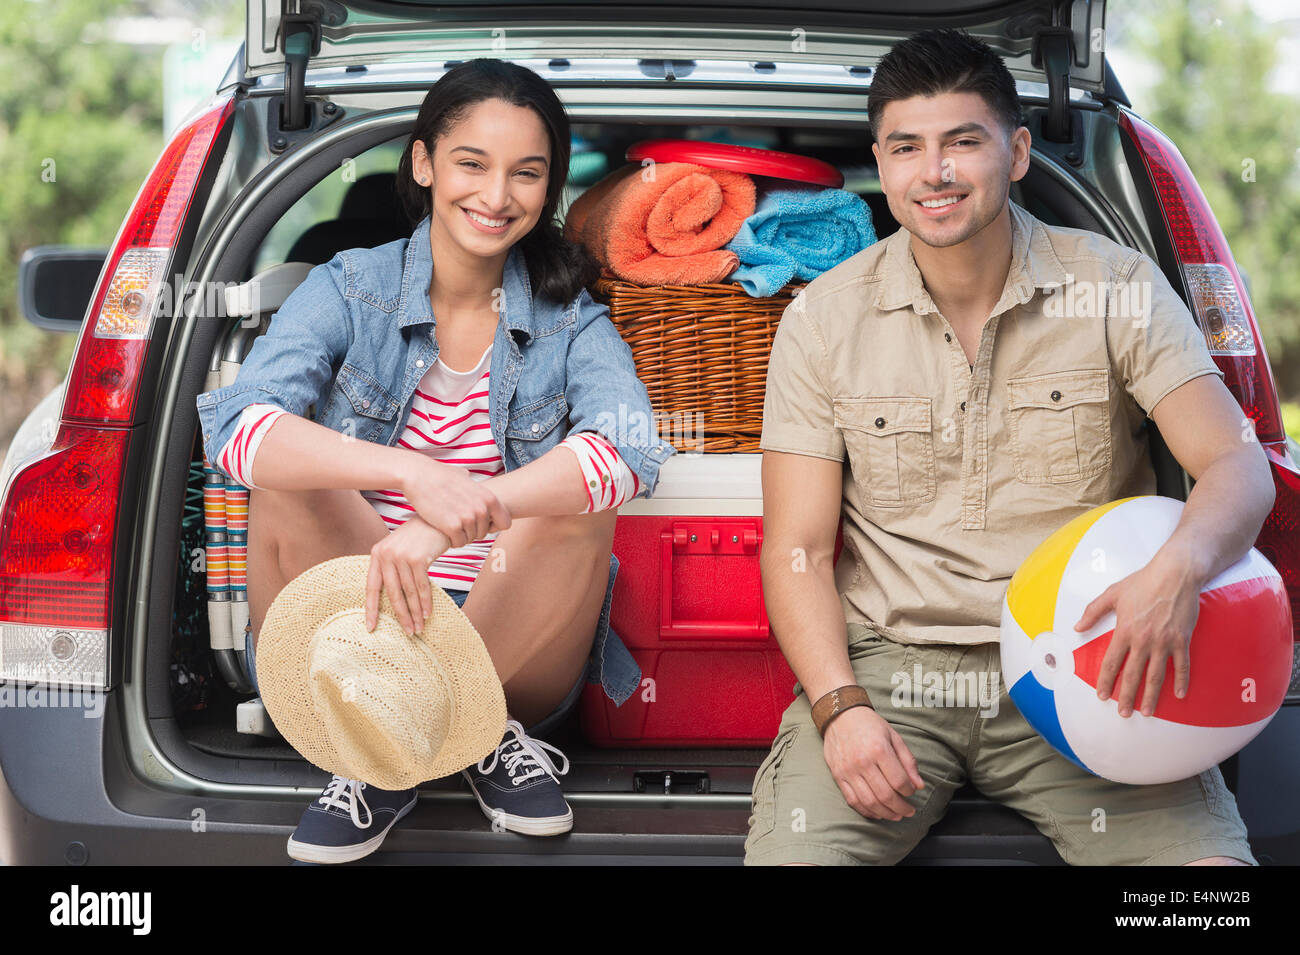 Portrait of young couple sitting in open car trunk - Stock Image